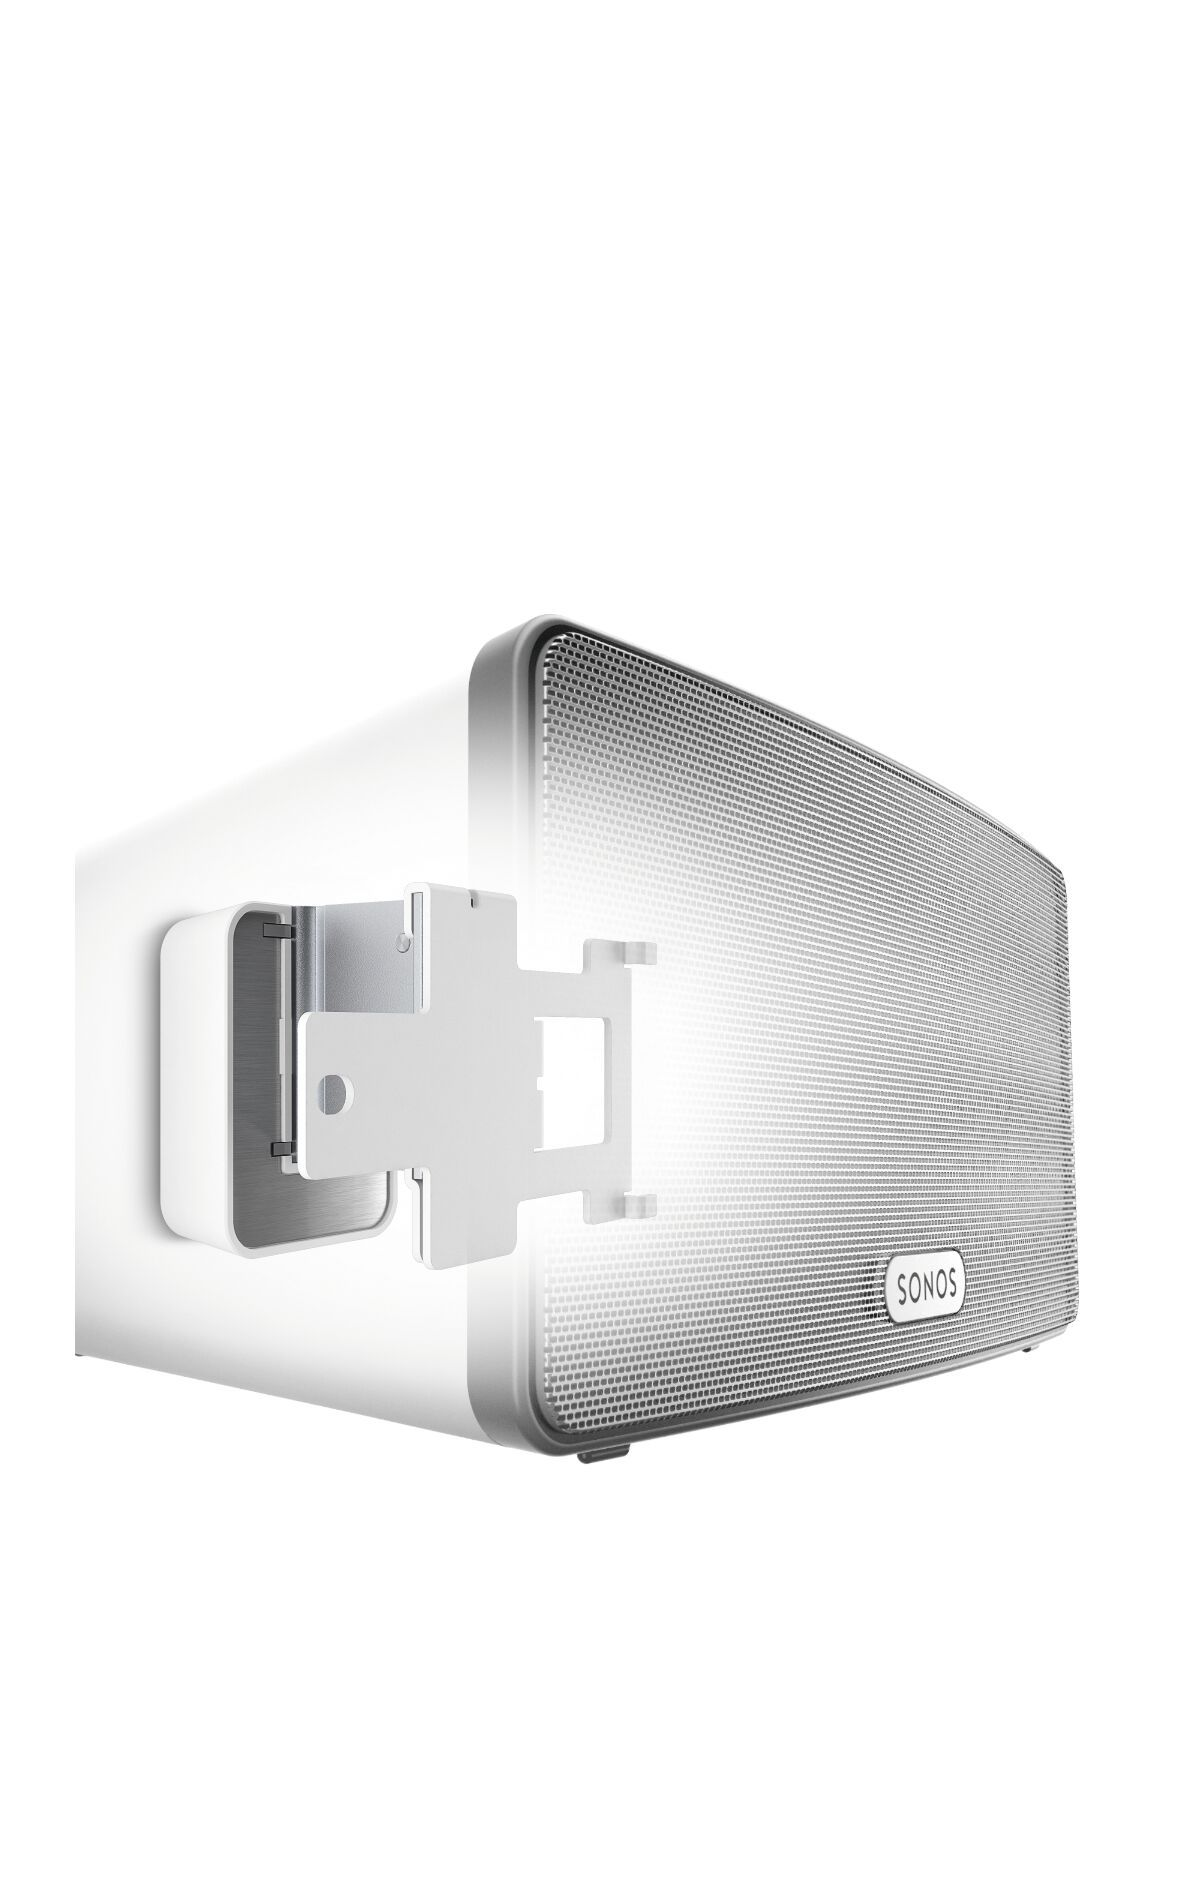 Vogel's SOUND 4203 Speaker Wall Mount for SONOS PLAY:3 (white) - Application